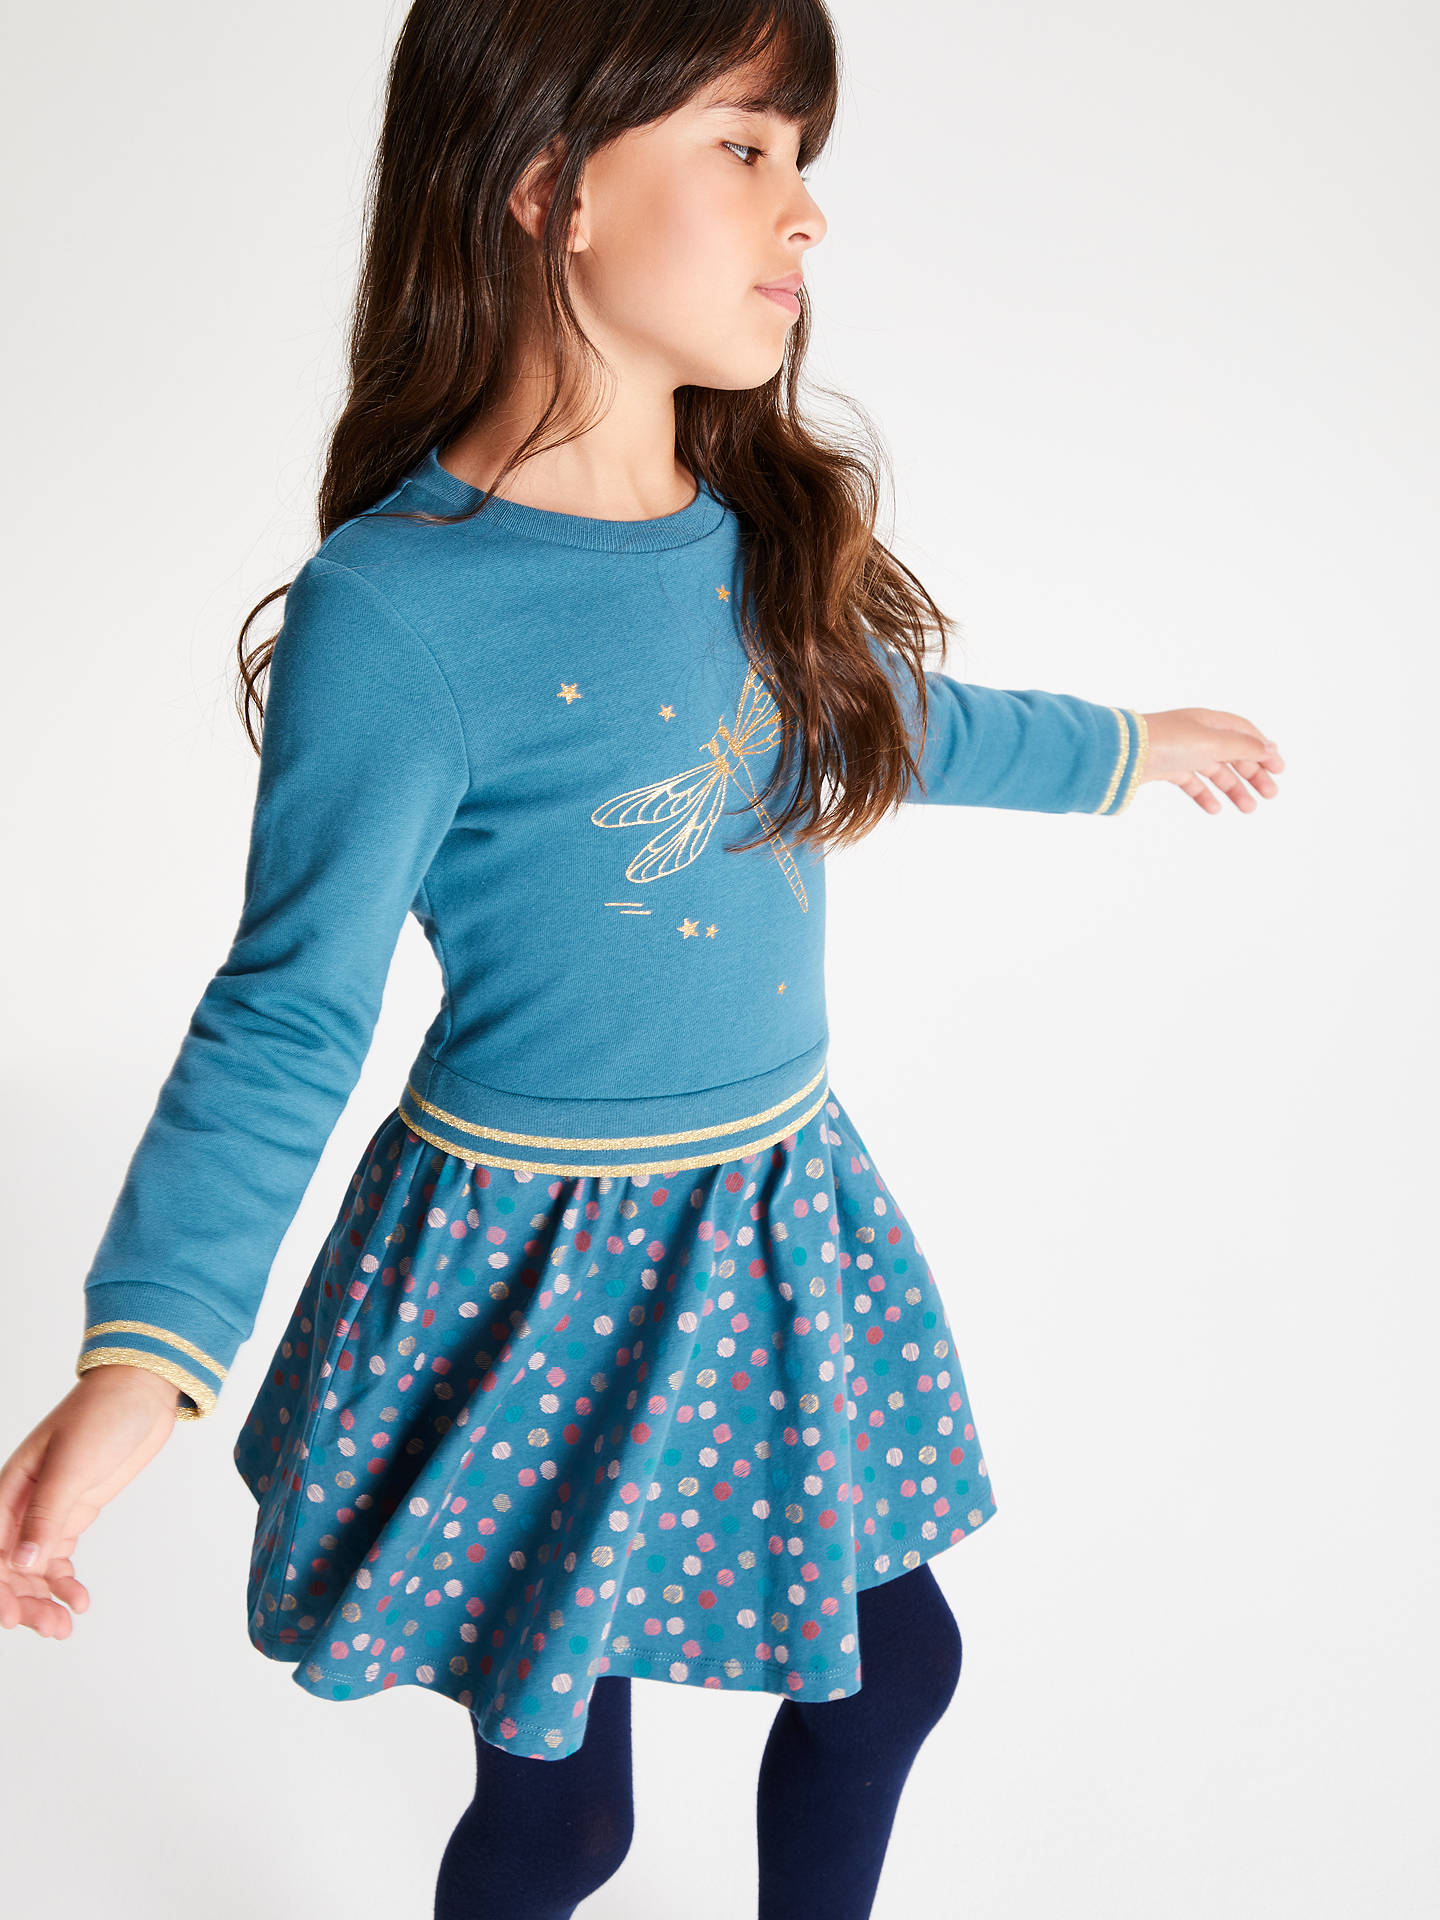 Buy John Lewis & Partners Girls' Dragonfly Dress, Blue, 9 years Online at johnlewis.com